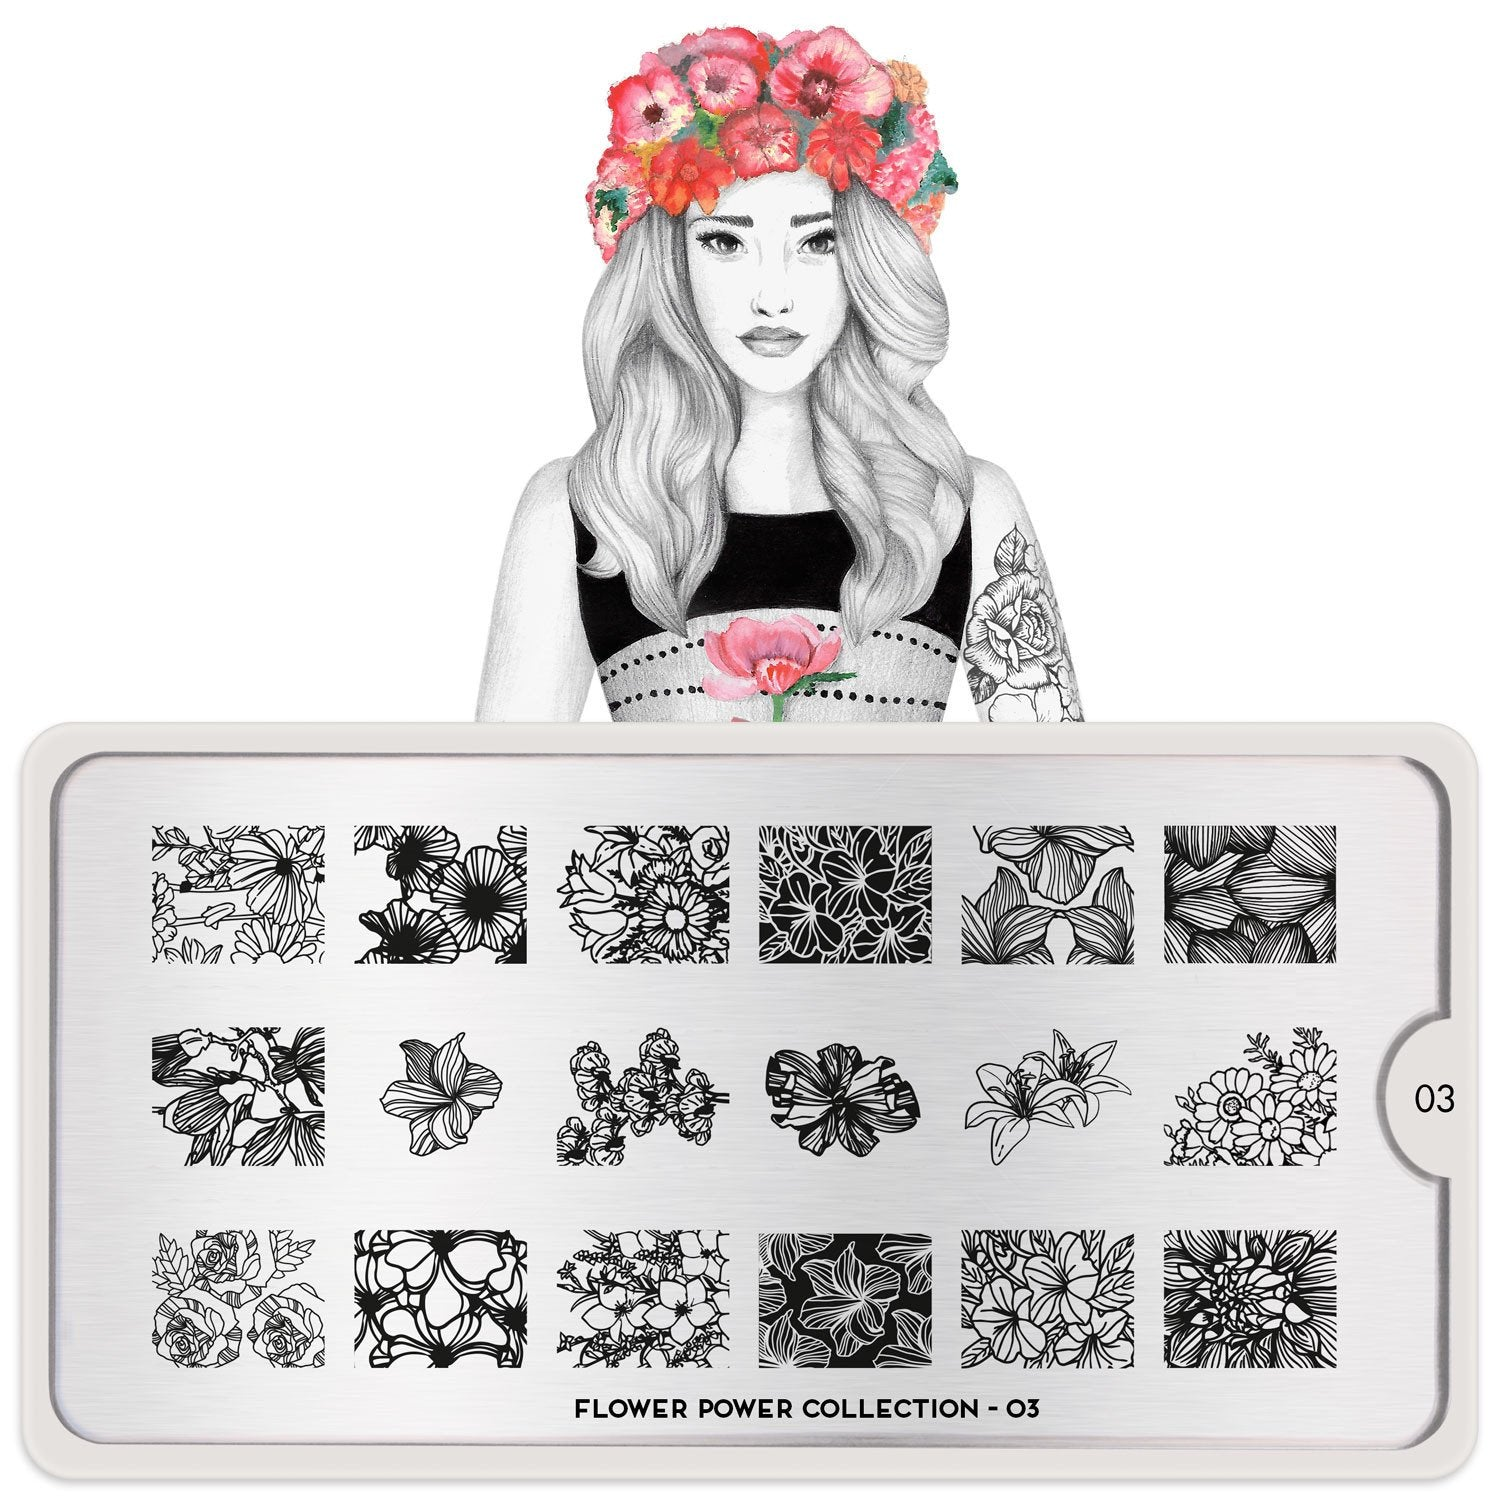 MoYou London Flower Power 03 stamping plate